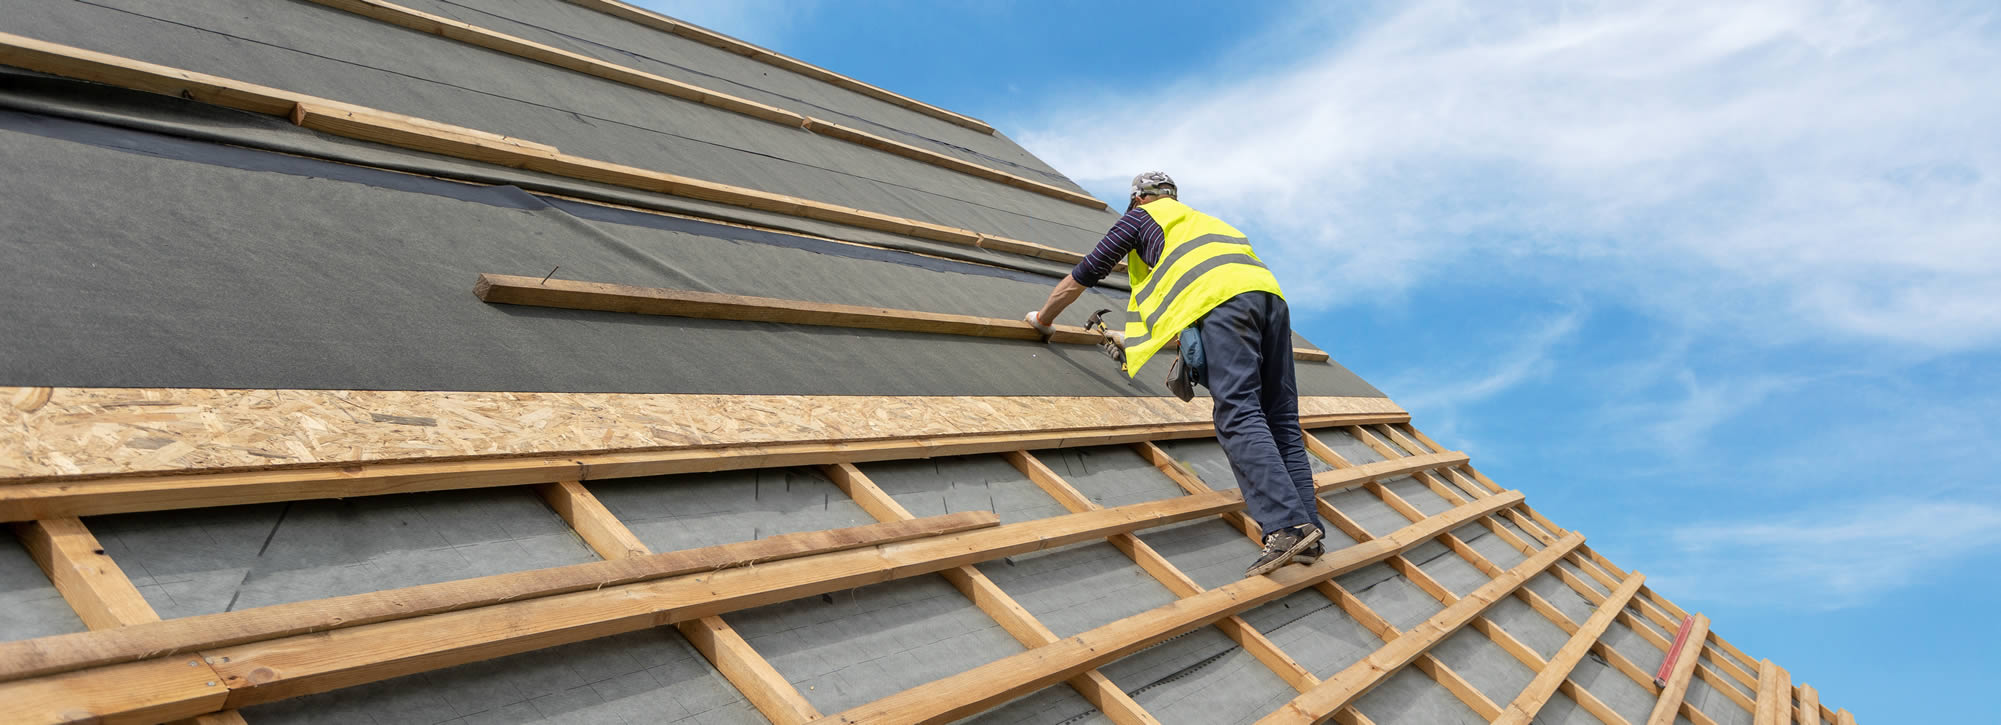 Why Do I Need Breathable Roofing Membrane?